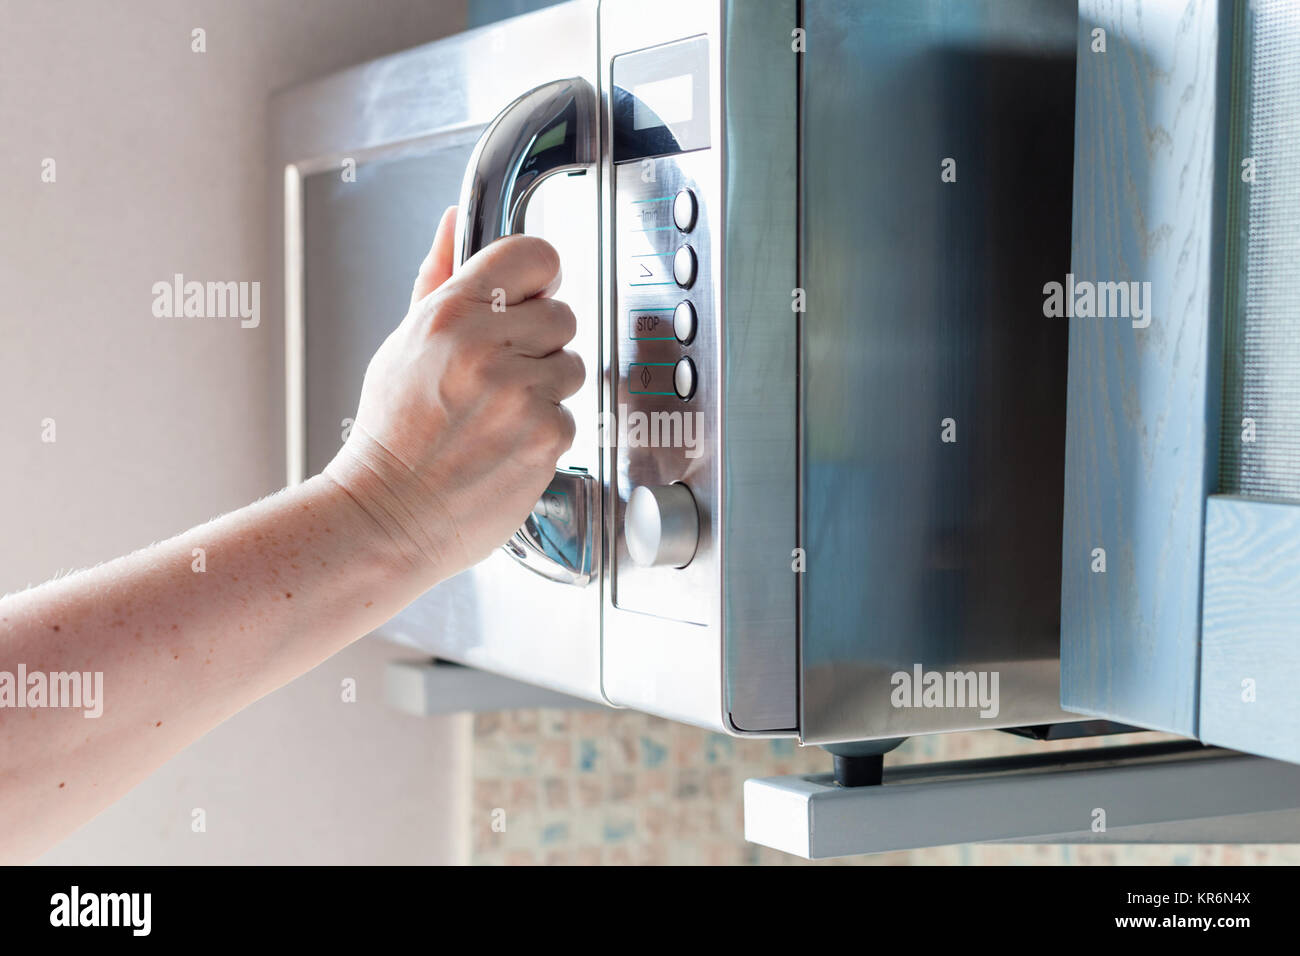 hand closes microwave oven for cooking food - Stock Image